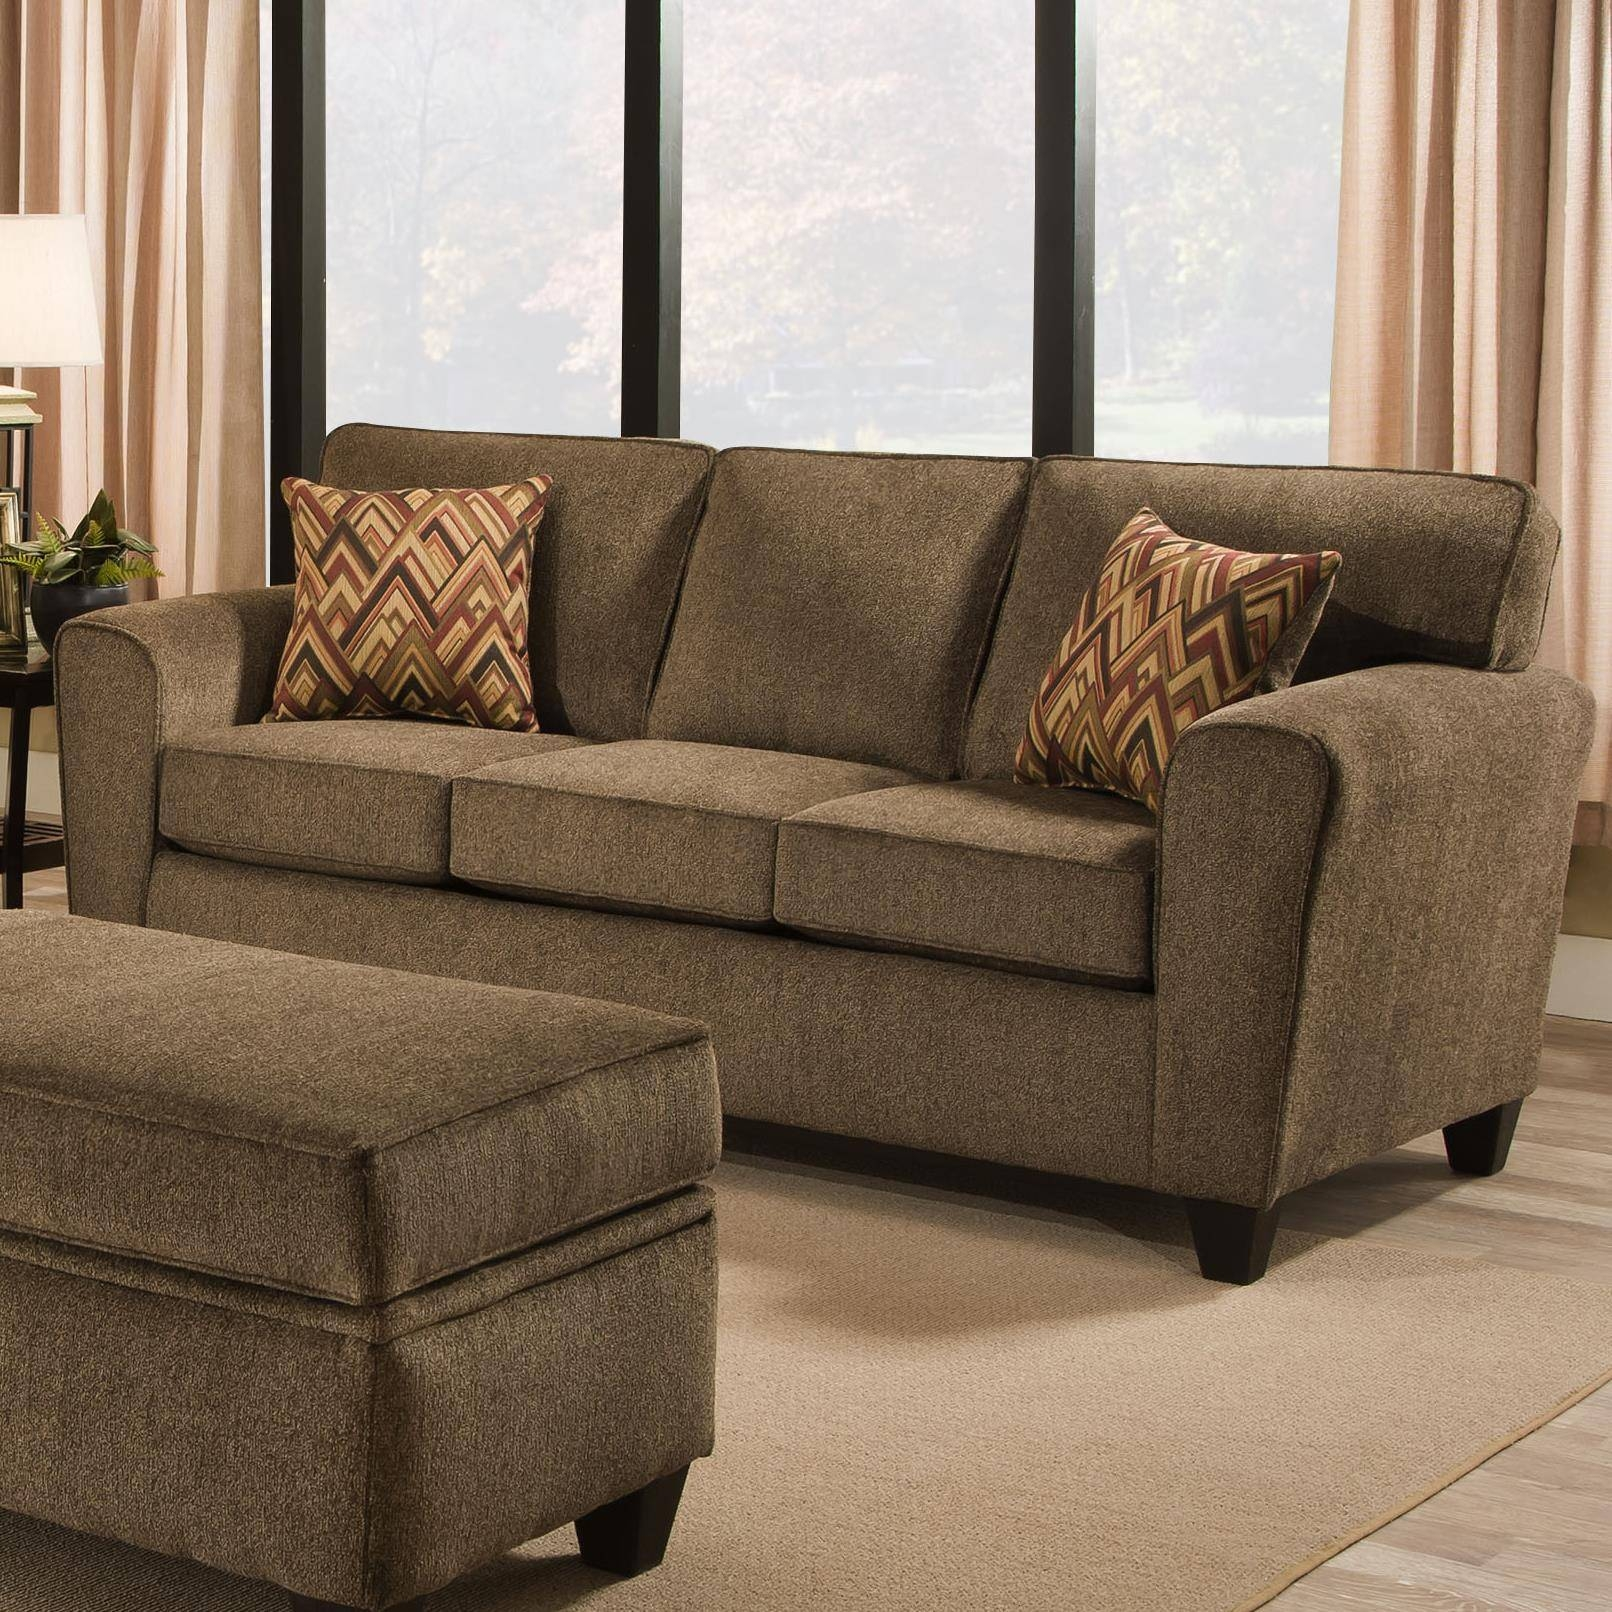 The Best Down Filled Sectional Sofas